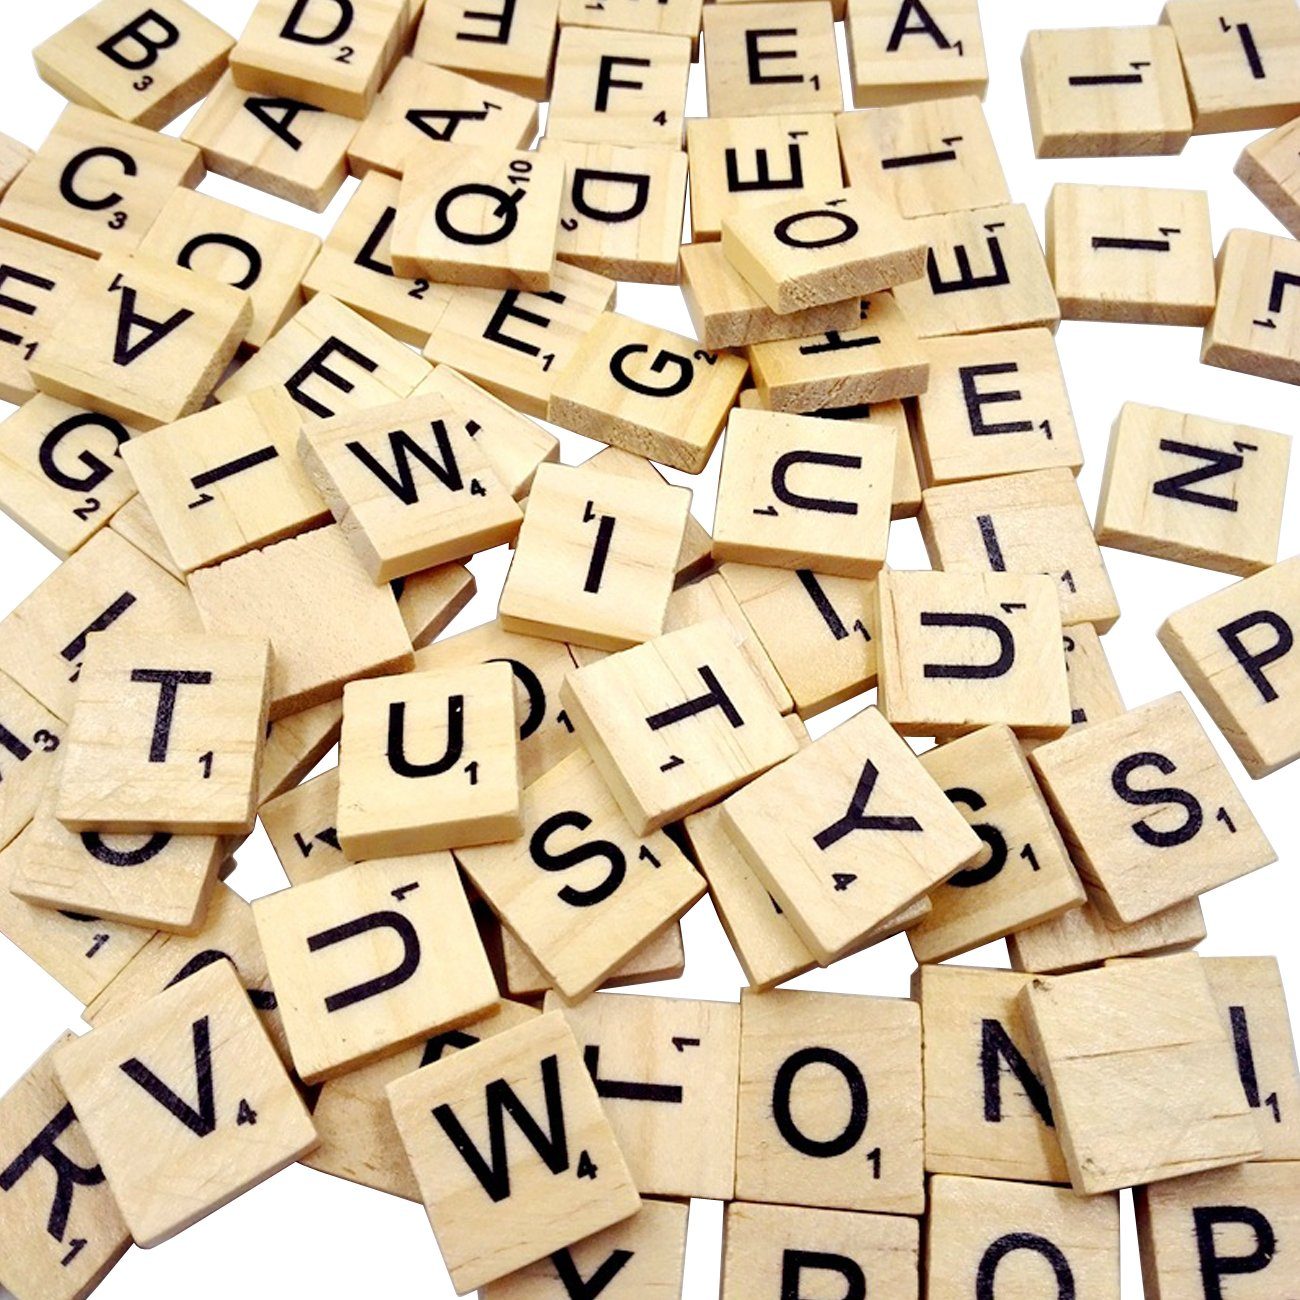 Sunnyglade 500PCS Wood Letter Tiles/ Wooden Scrabble Tiles A-Z Capital Letters for Crafts, Pendants, Spelling